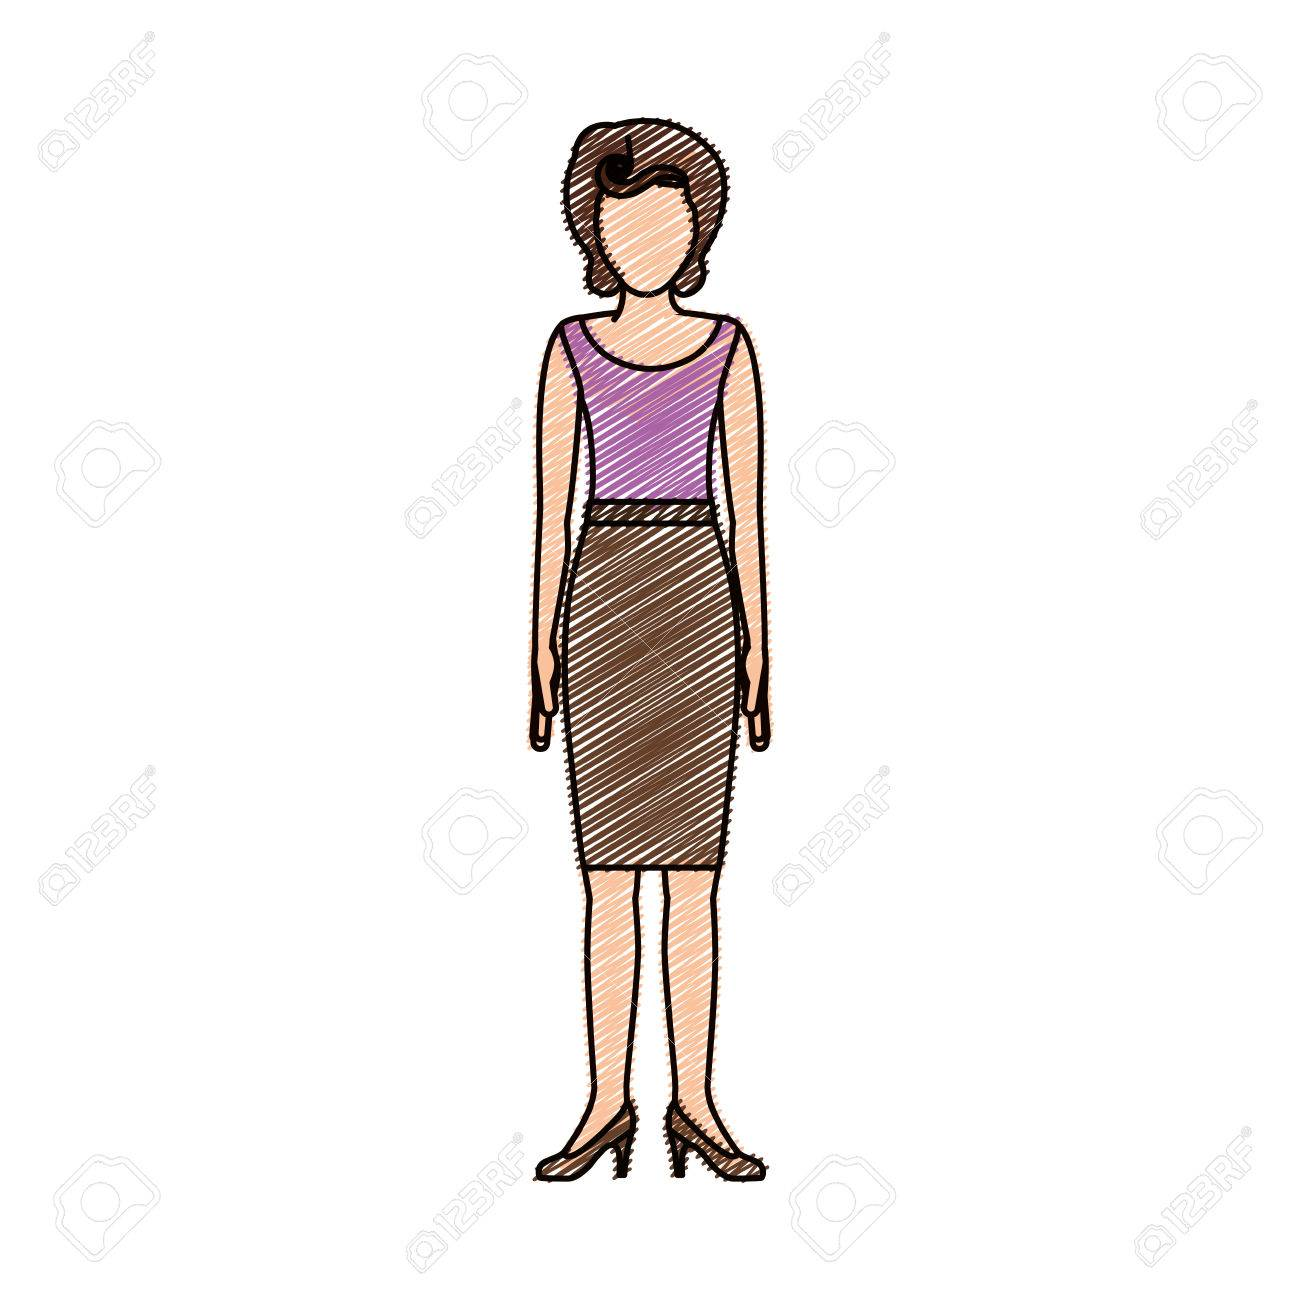 1300x1300 Color Pencil Drawing Of Woman With Blouse And Skirt Retro Style